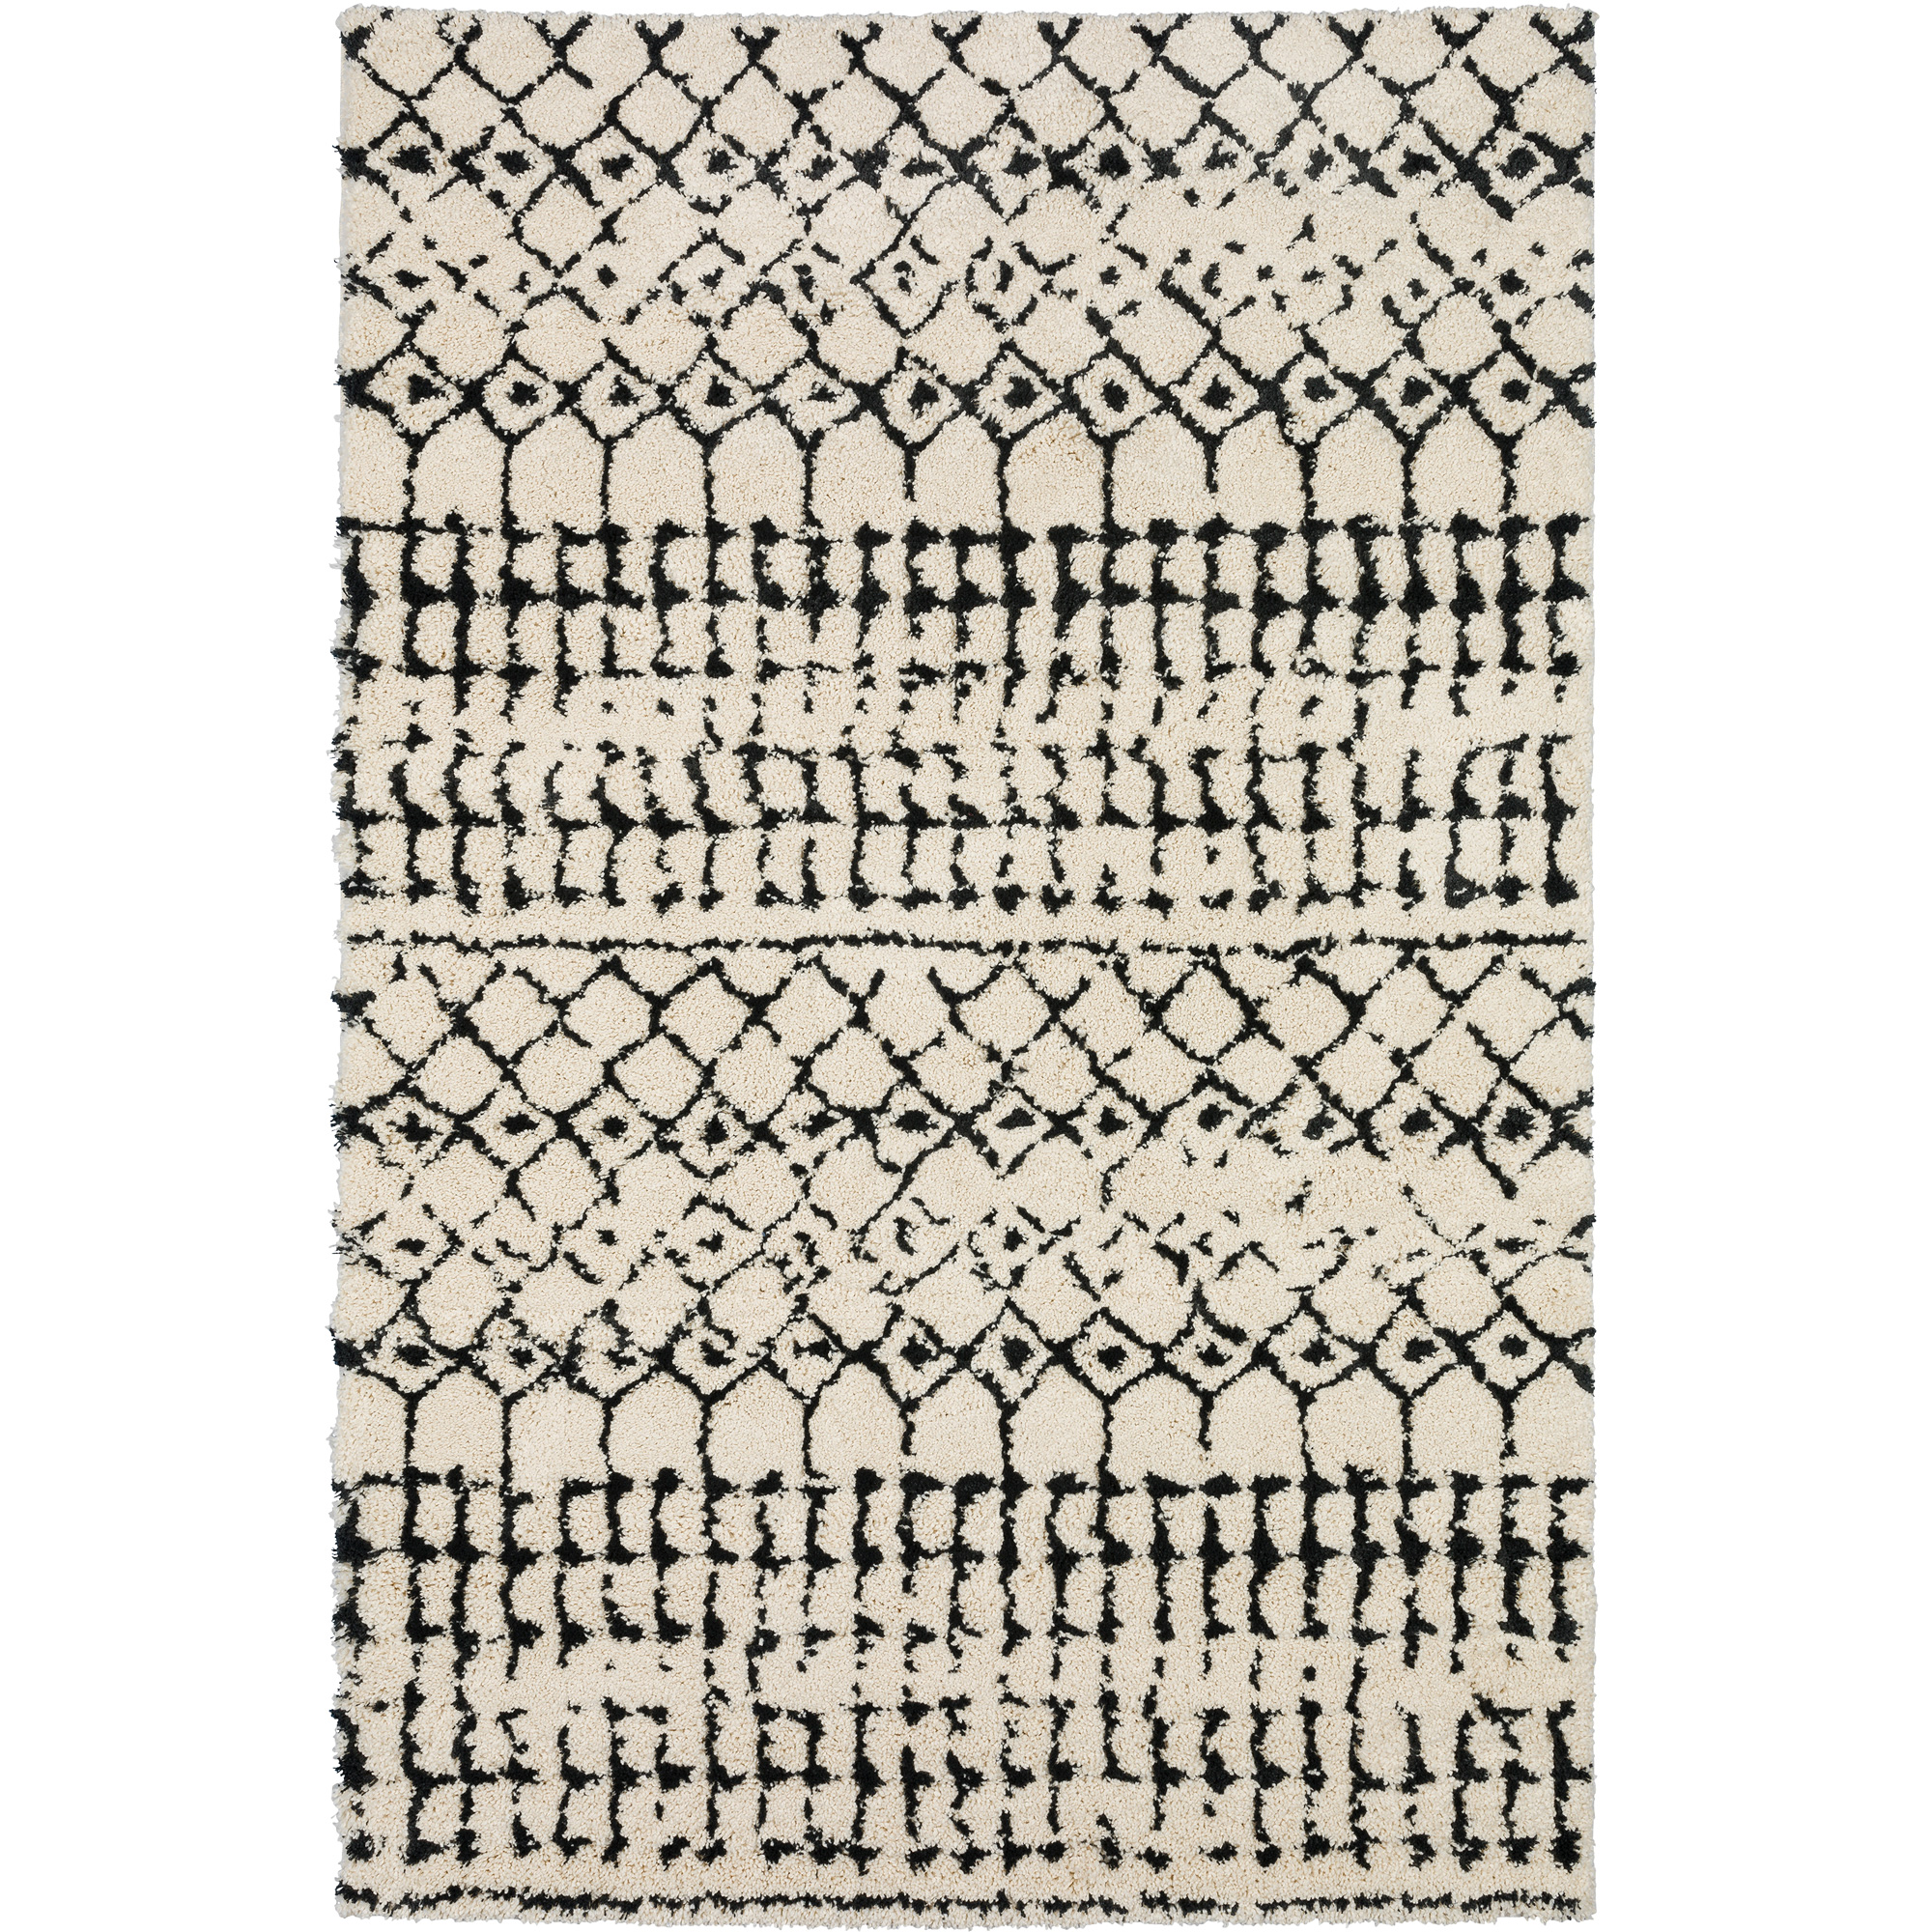 Dalyn Rug Company | Marquee Ivory And Midnight 9x13 Area Rug